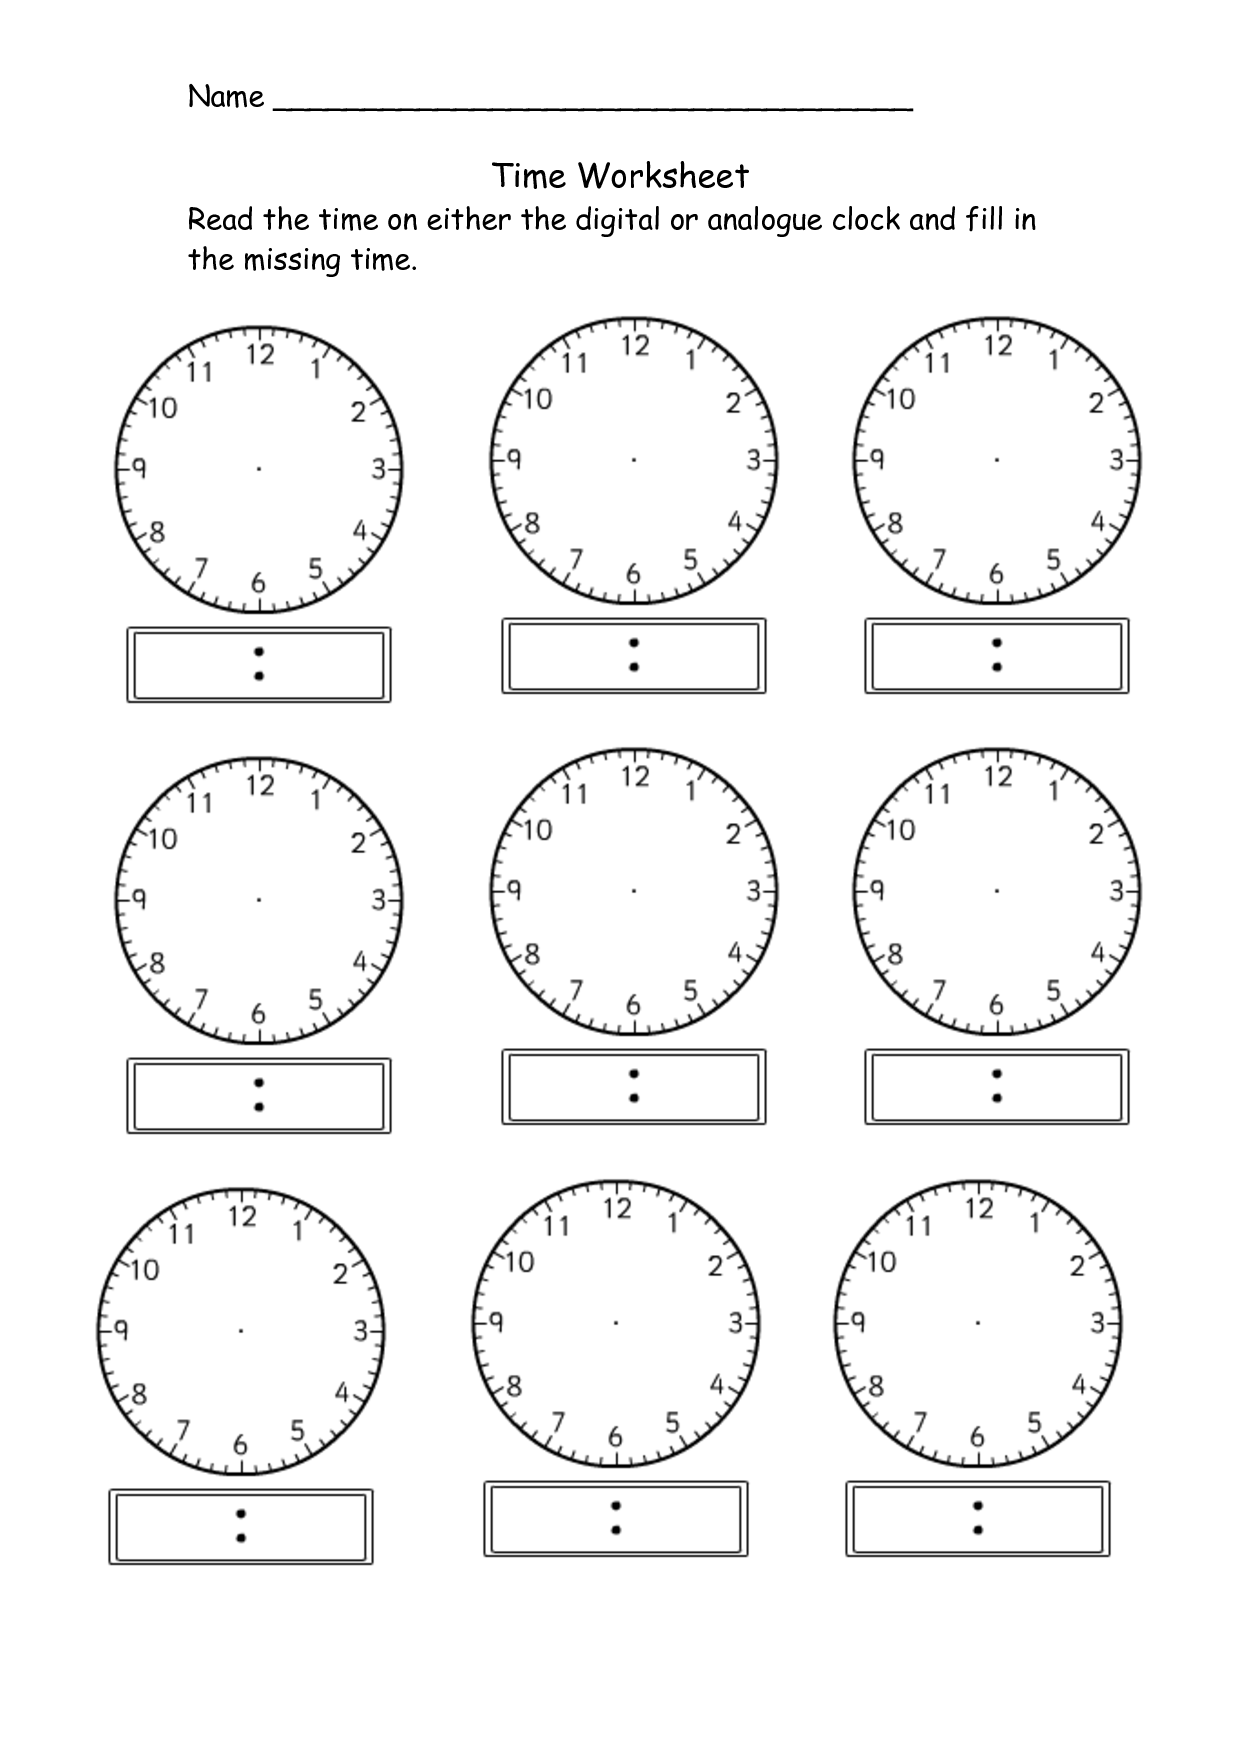 worksheet First Grade Time Worksheets time to the half hour worksheets for first grade free bl nk clock w ksheet tell g kiddo shelter educ ti